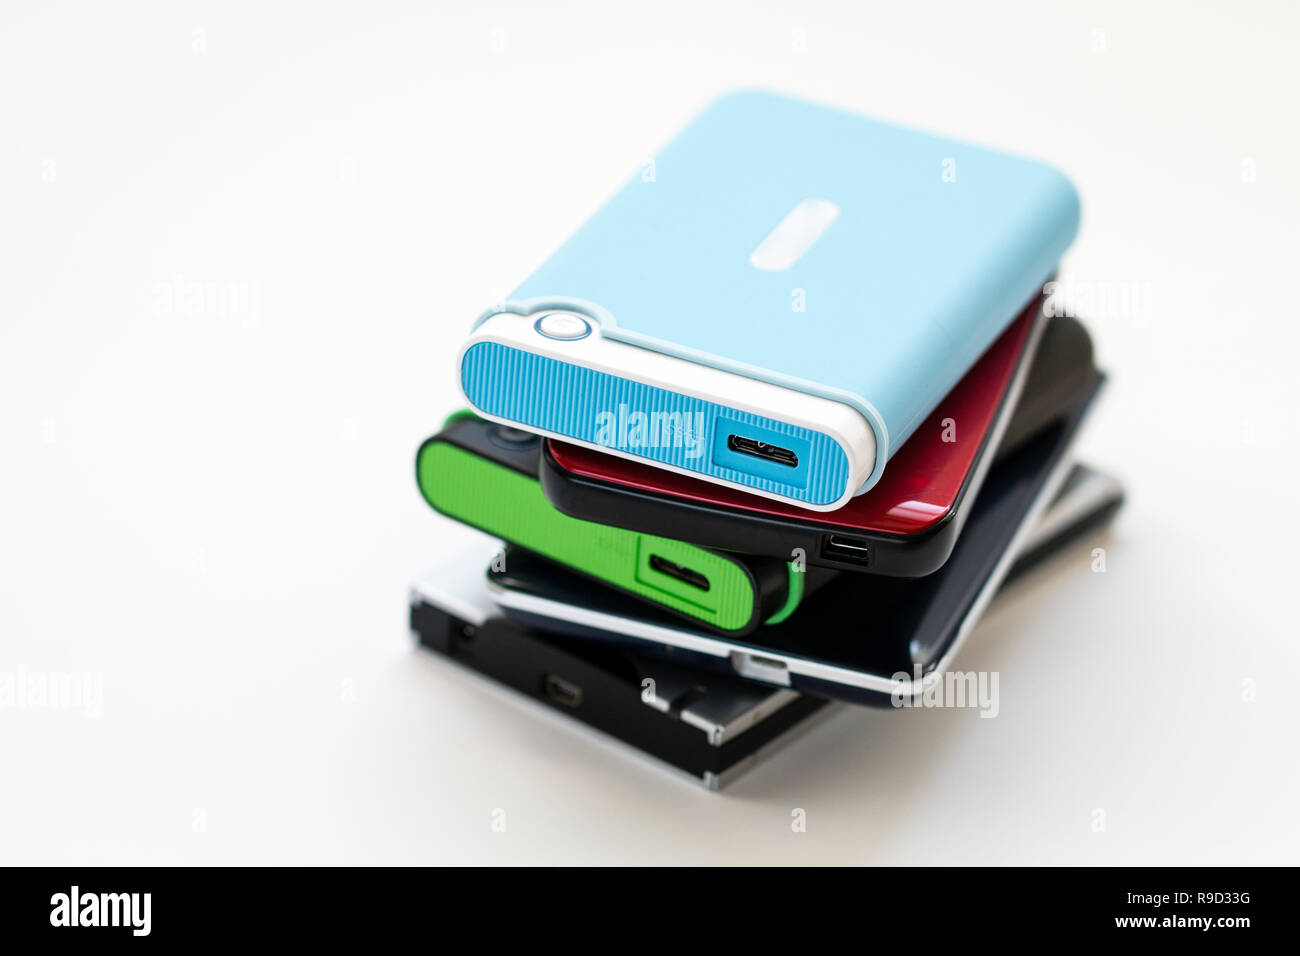 Stack of five different types of portable external hard drives with USB connection socket. Generic no name. Shallow focus. Plain white background. - Stock Image